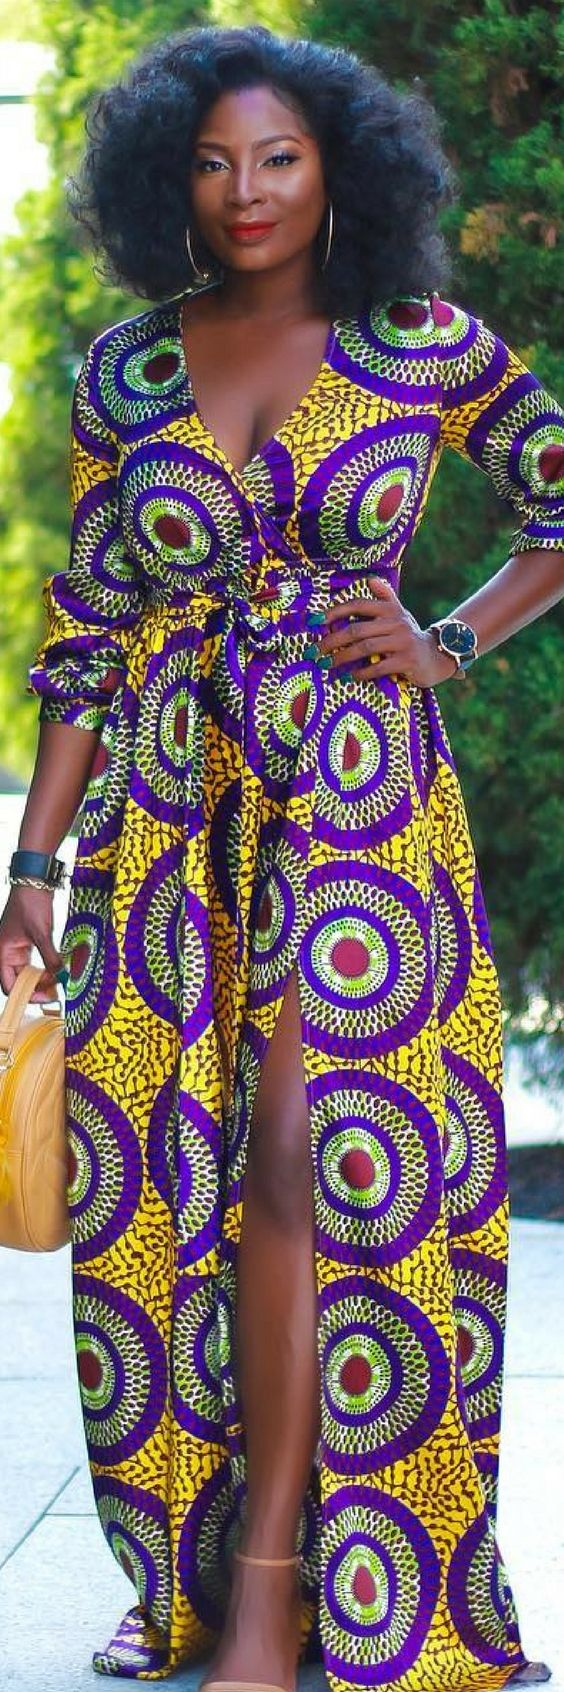 3 Of The Best African Print Outfits To Complete Your Wardrobe